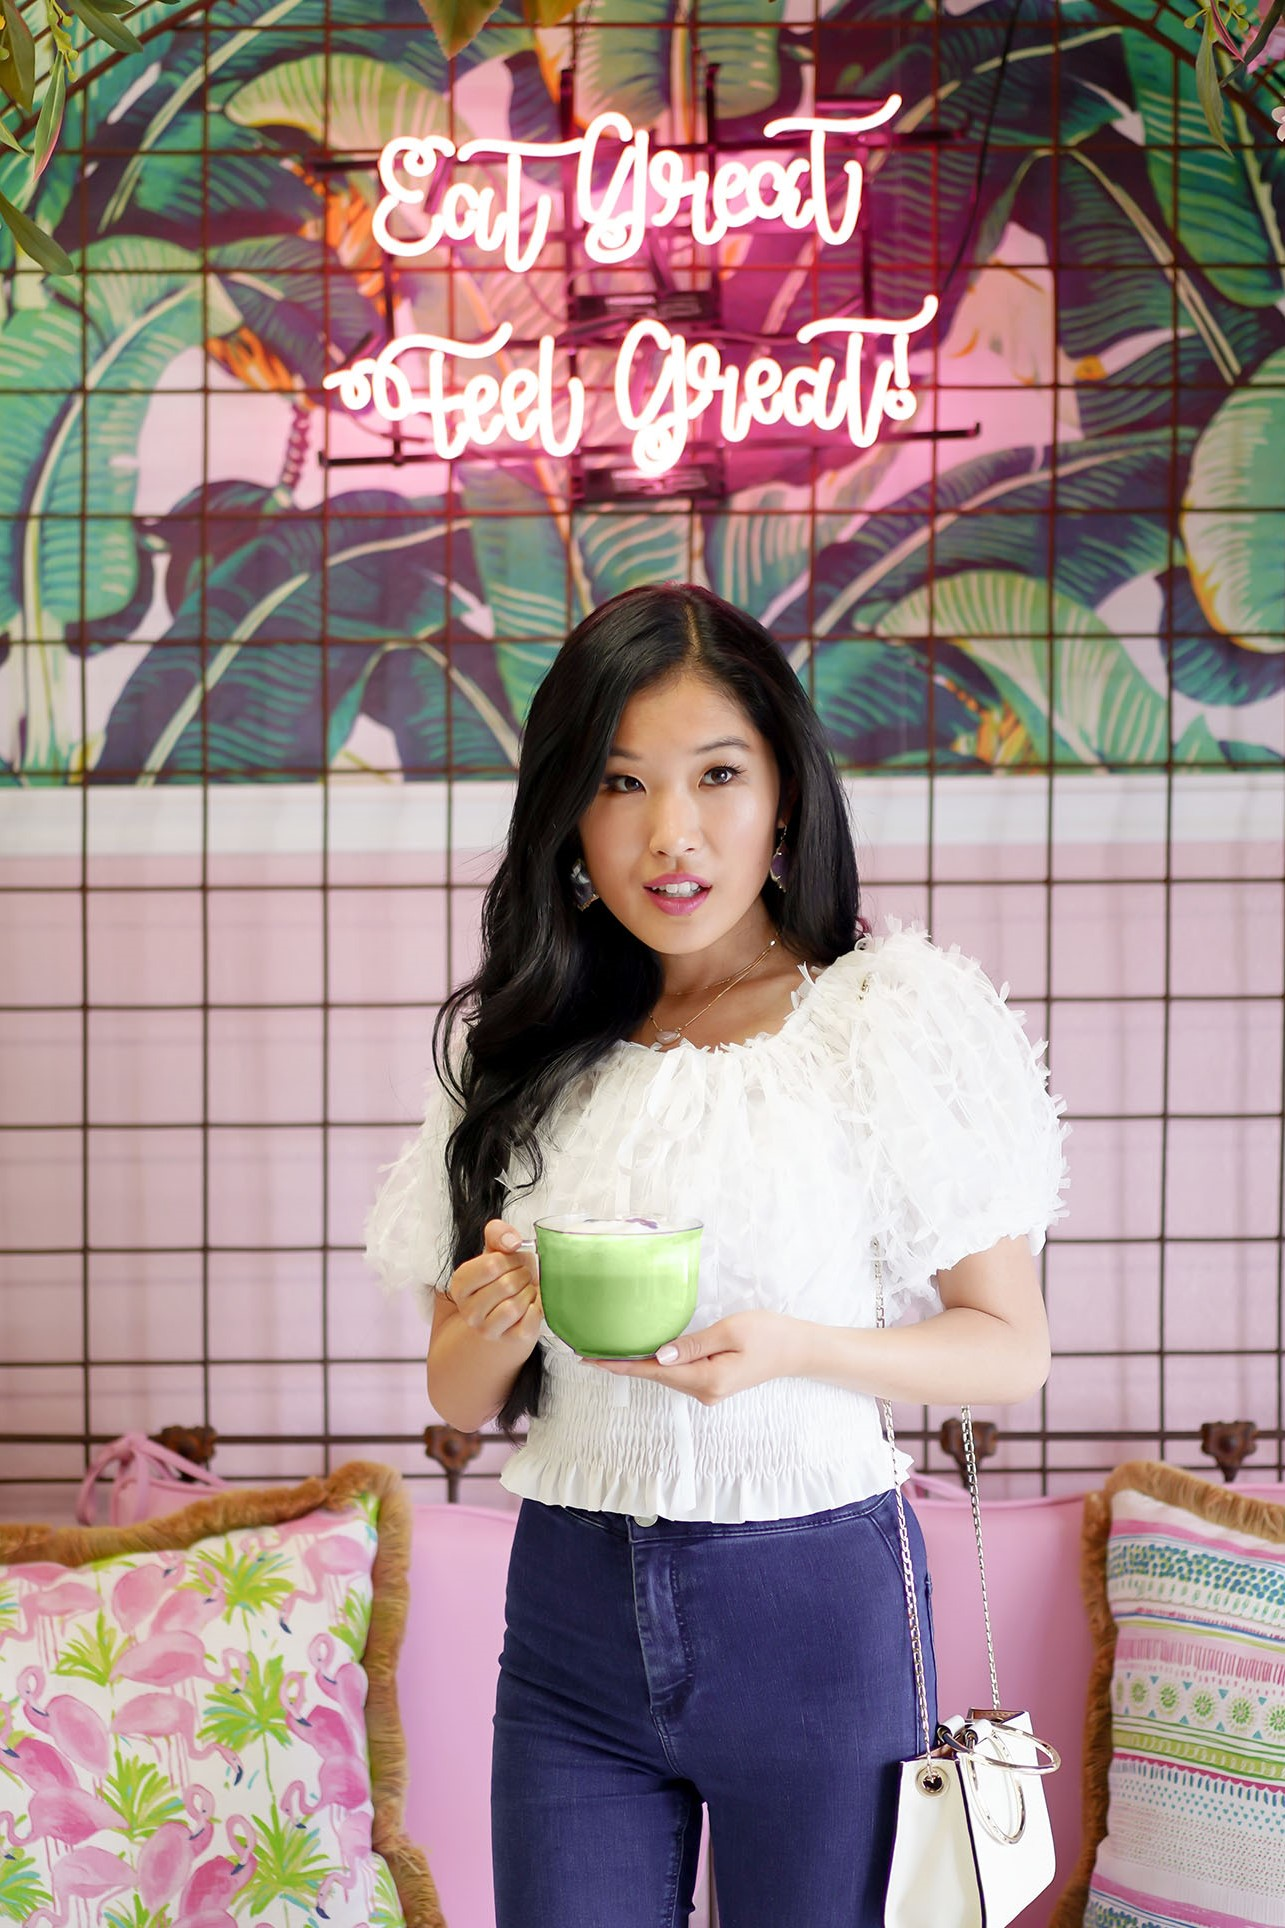 Matcha and More, Eat Great Feel Great Pink Neon sign